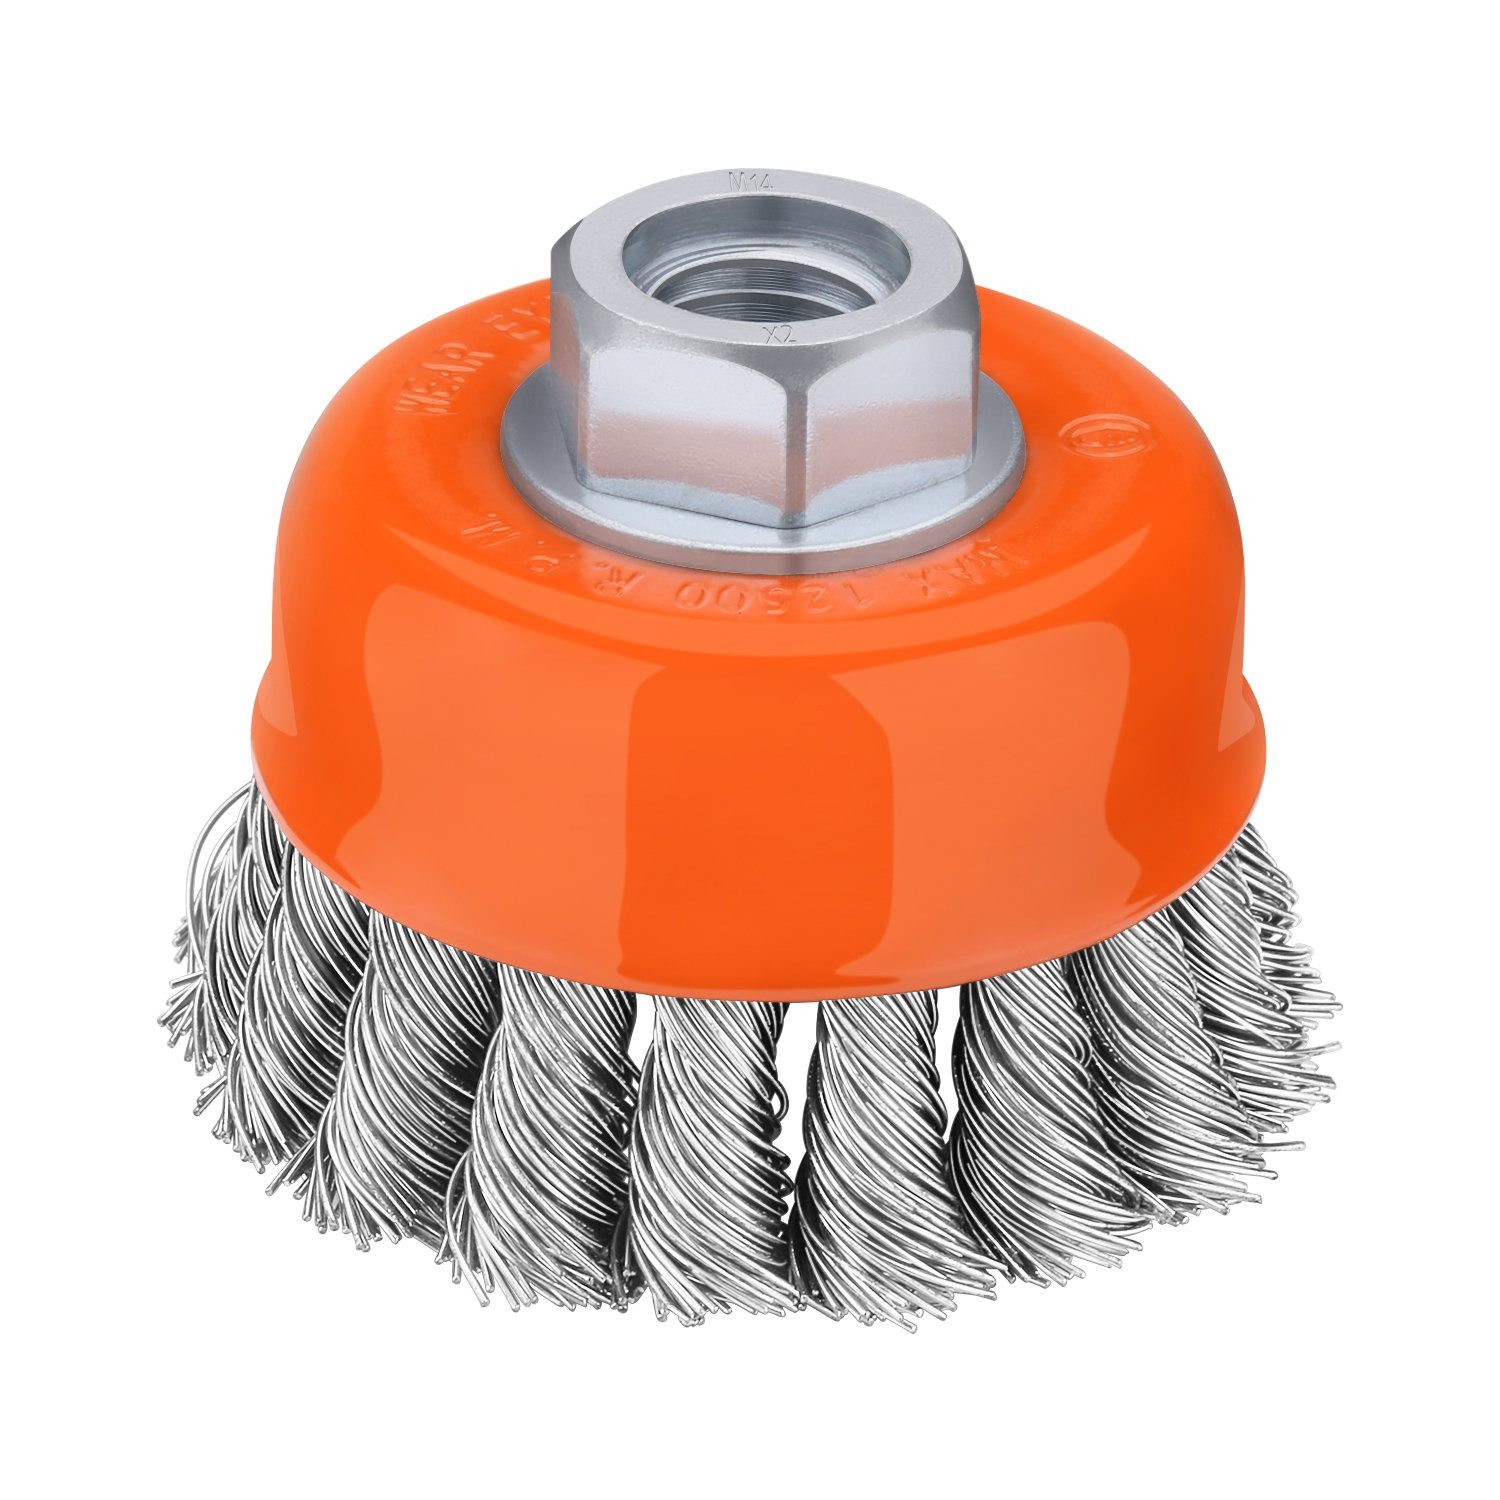 Tacklife PKCB2 Twist Knot Cup Brush, Angle Grinder Wire Cup Brush Wheel M14 x 2, Max 12,500 RPM, Rust and Paint Removal- Fit for 115mm Angle Grinder Rust and Paint Removal-Fit for 115mm Angle Grinder